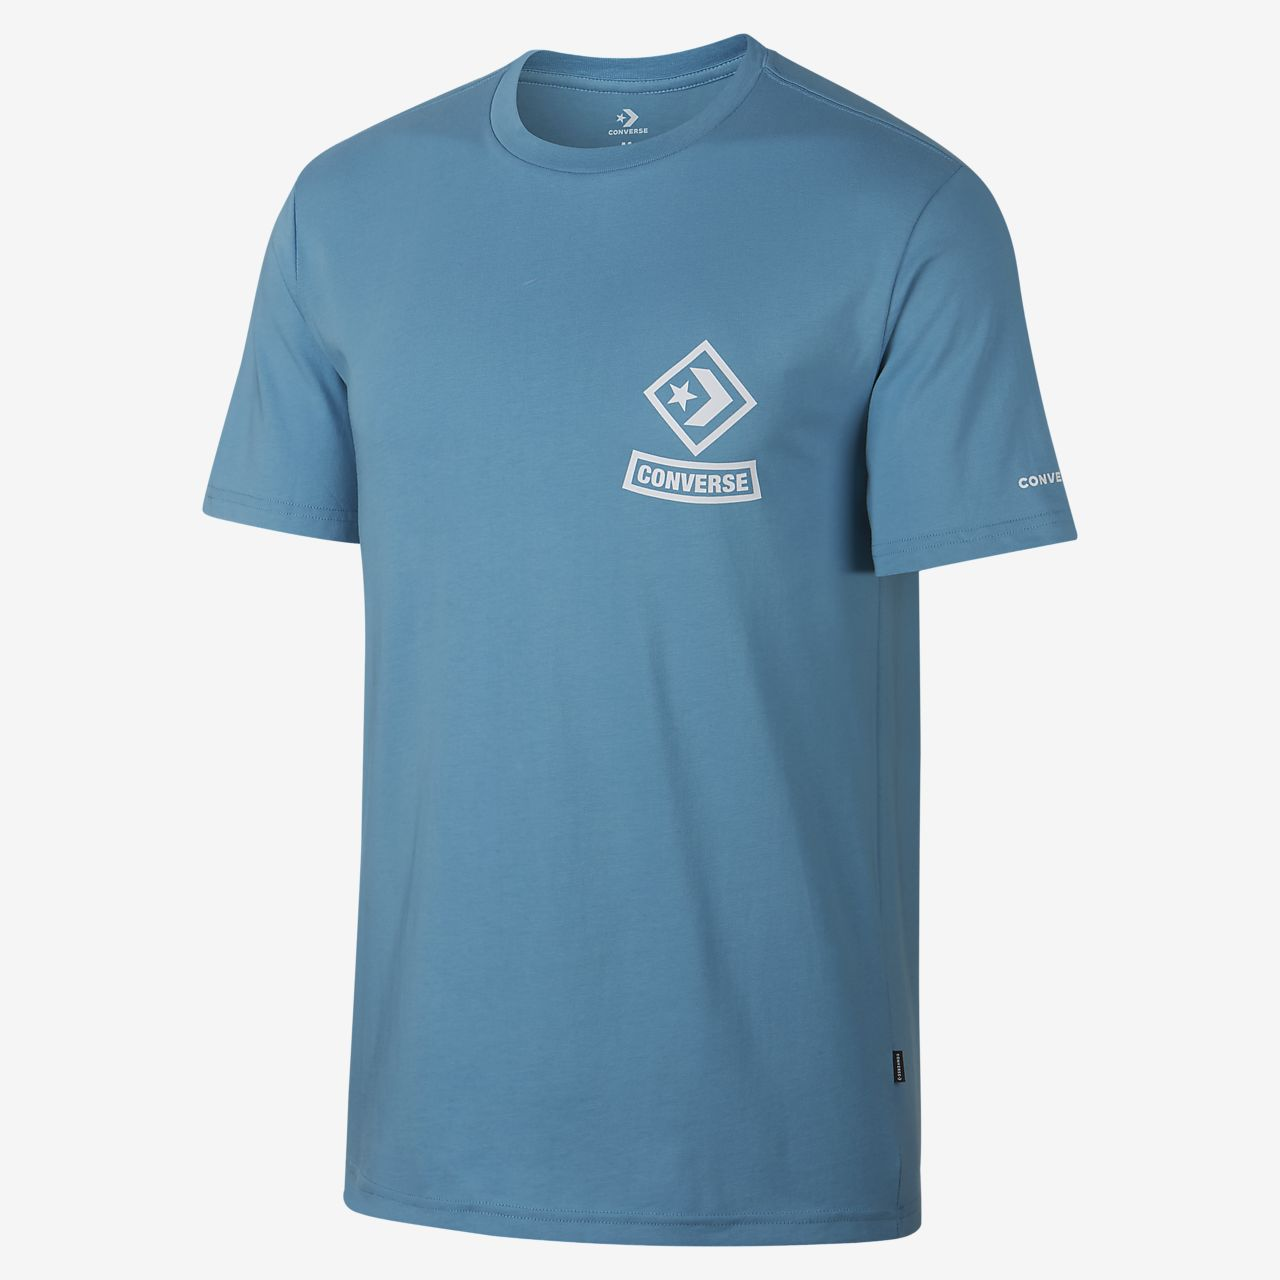 Converse Diamond Arch Men's T-Shirt